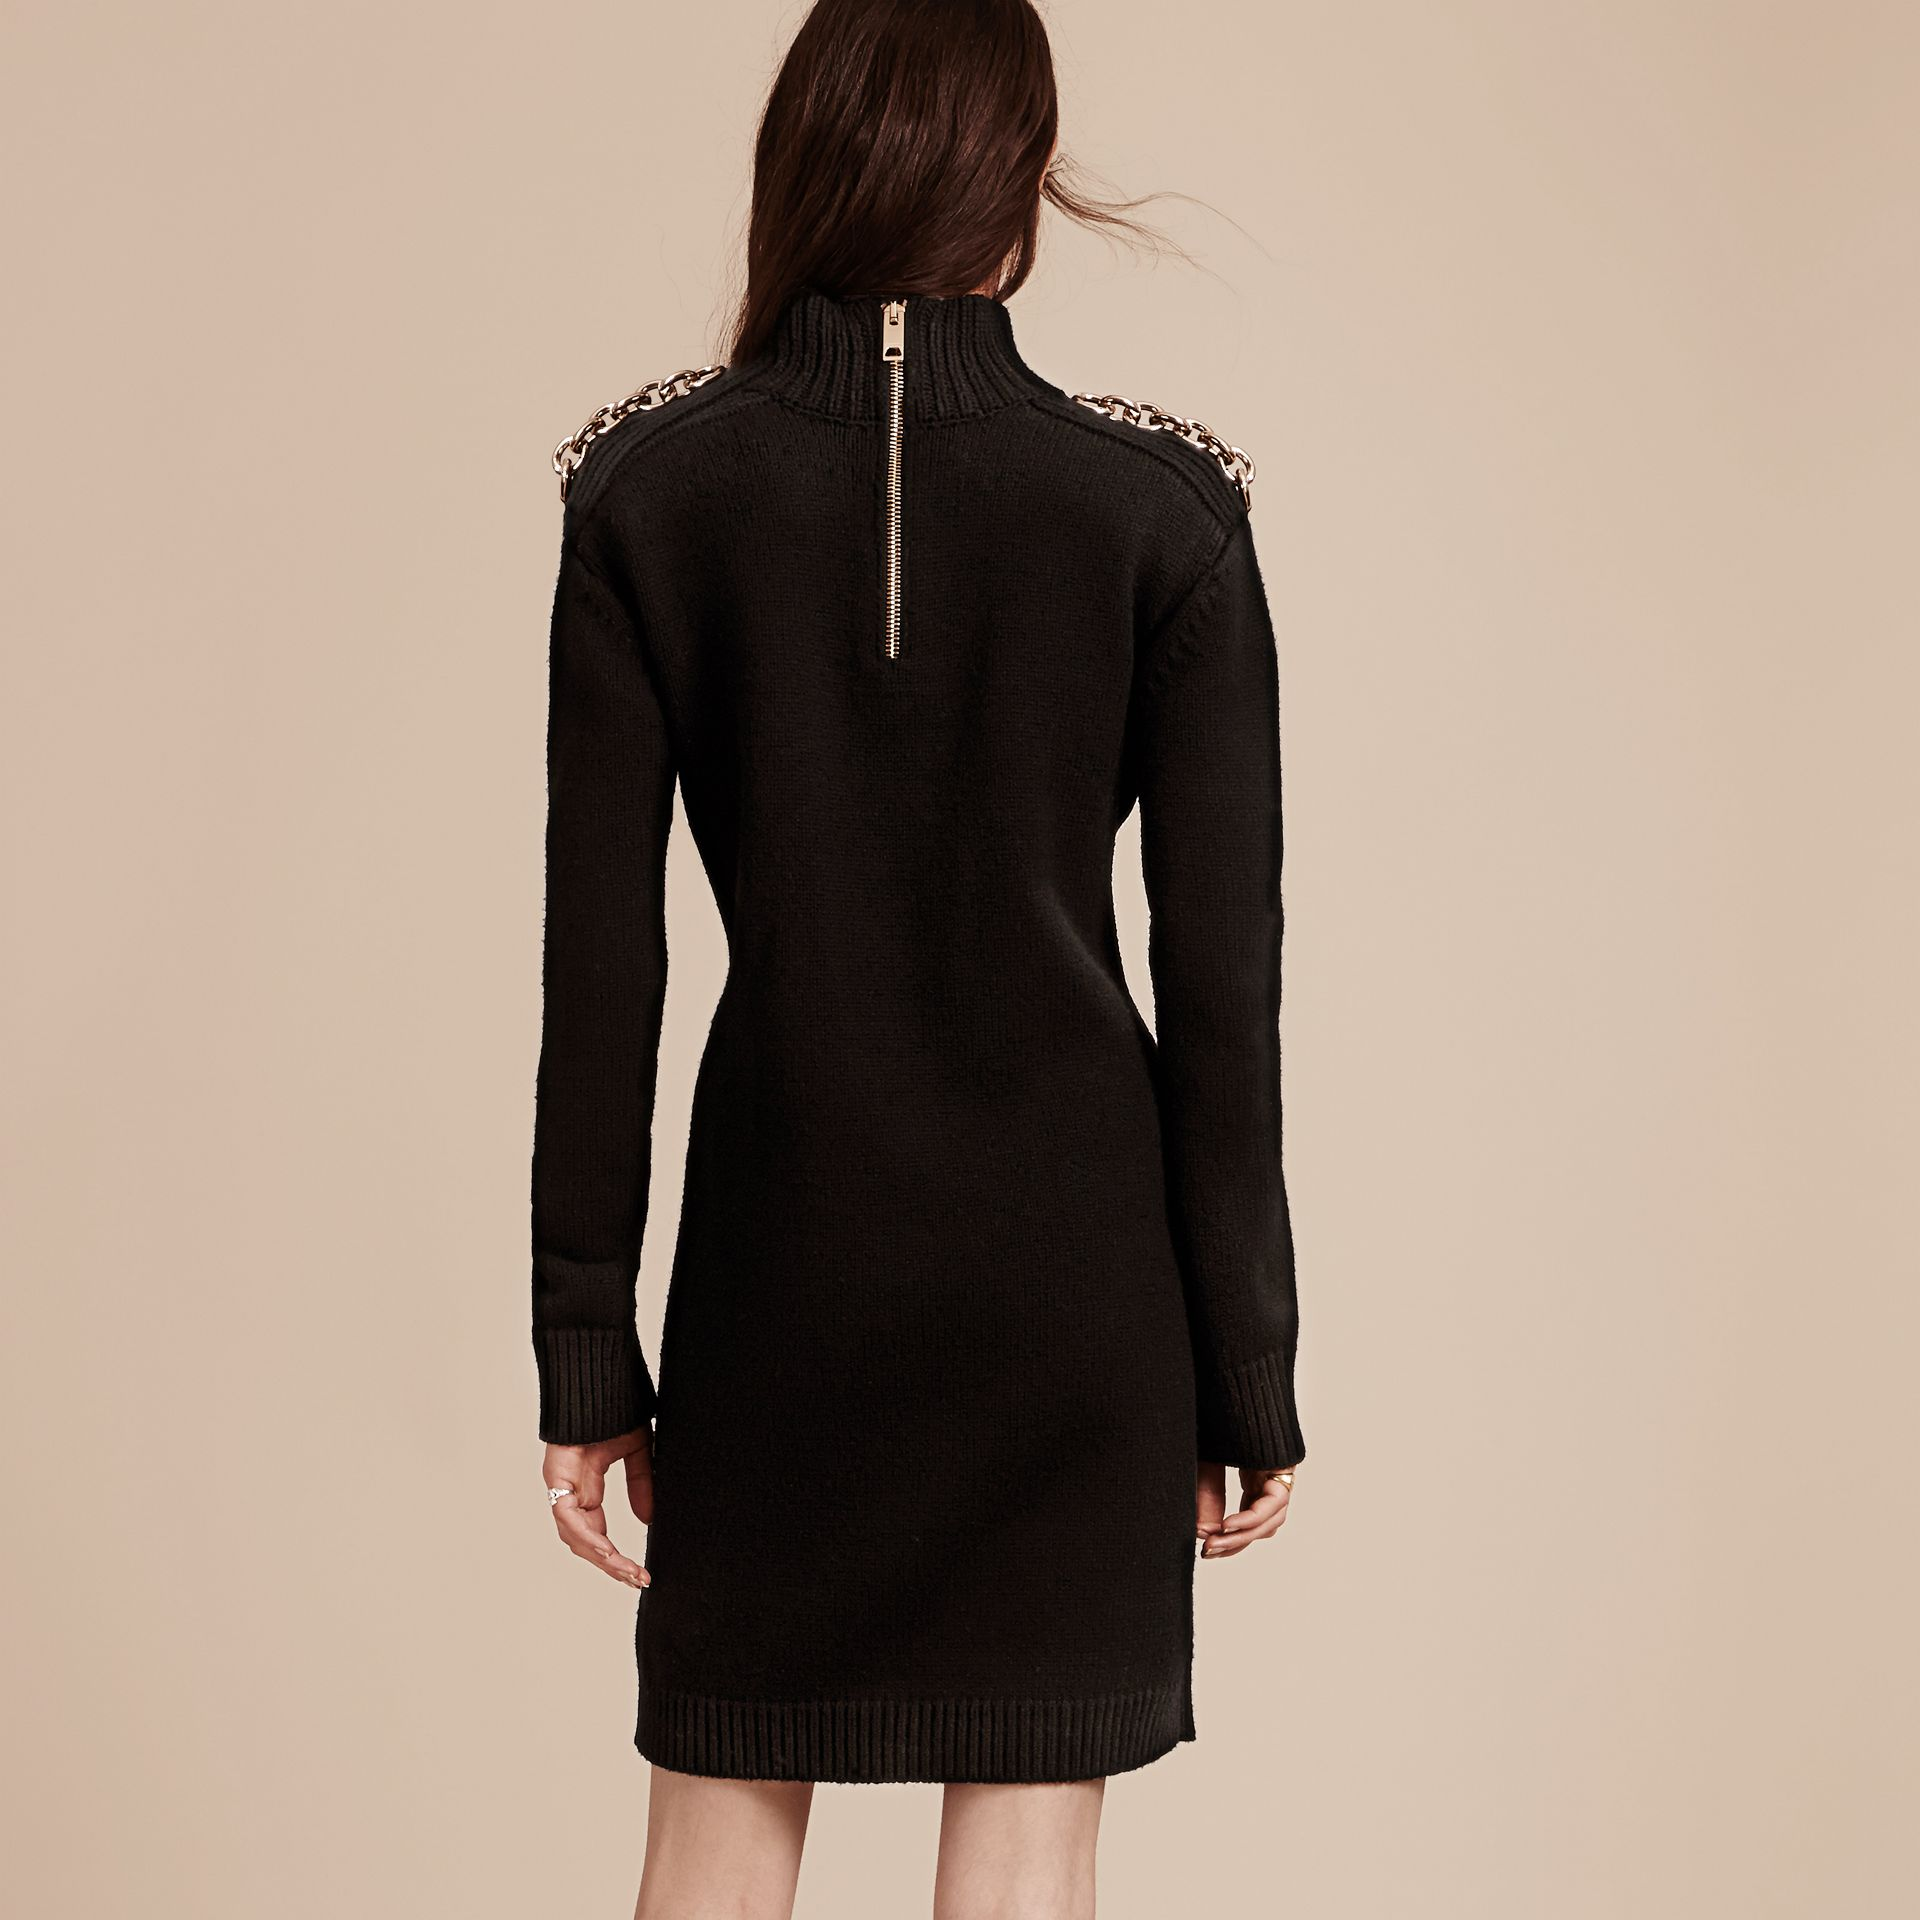 Black Chain Detail Wool Cashmere High-neck Dress - gallery image 3